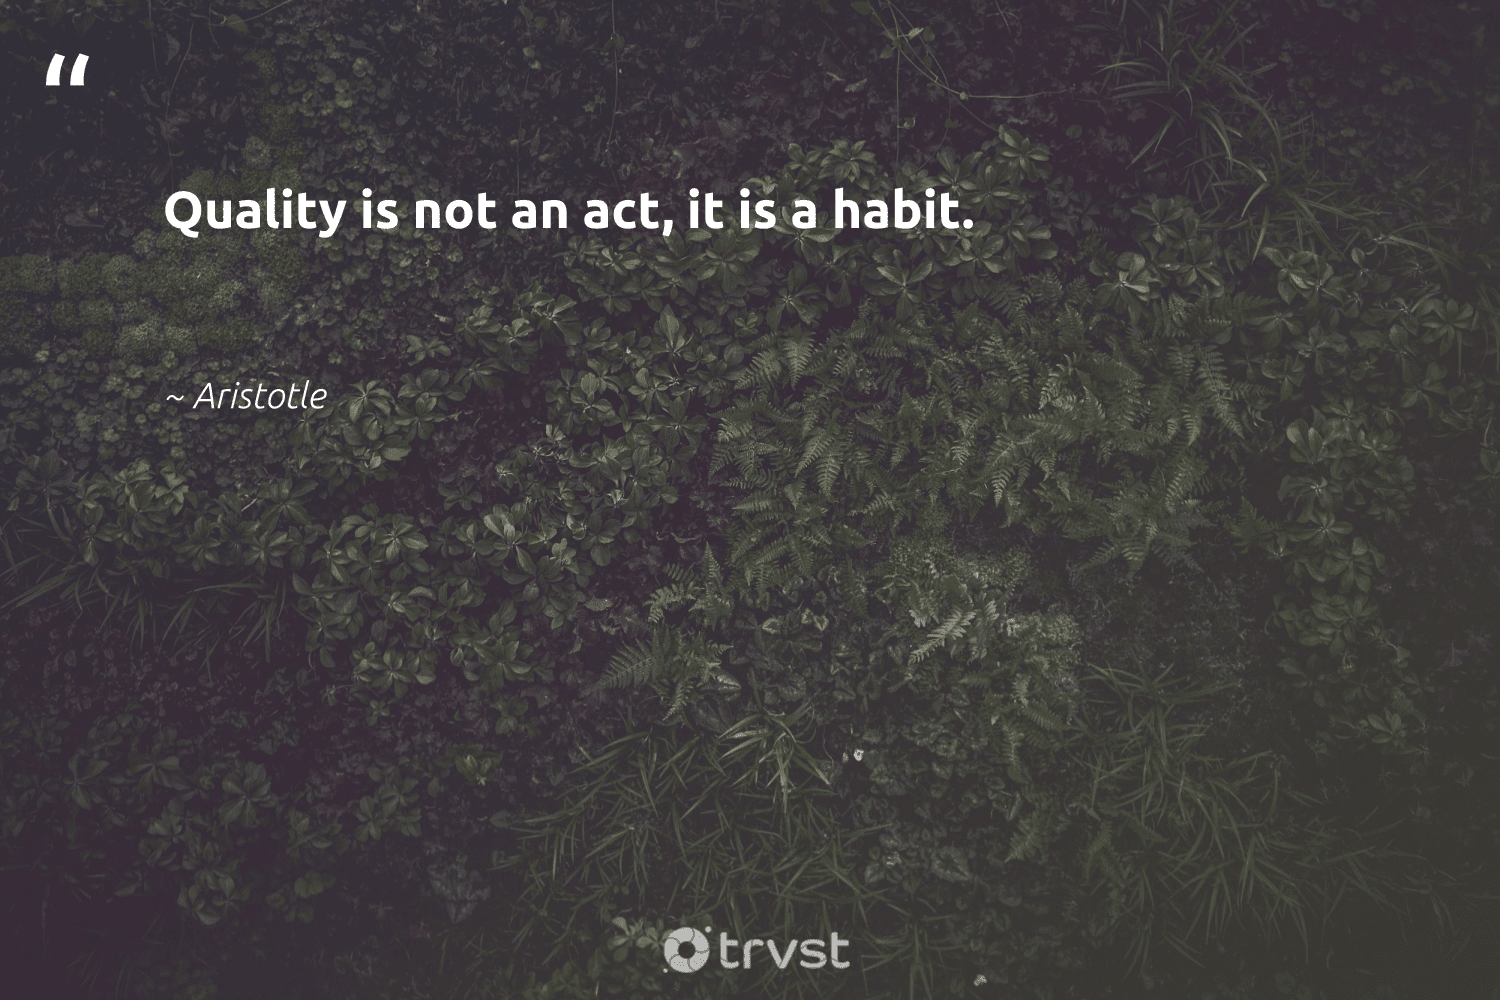 """""""Quality is not an act, it is a habit.""""  - Aristotle #trvst #quotes #softskills #socialimpact #begreat #bethechange #nevergiveup #dosomething #futureofwork #gogreen #dogood #takeaction"""